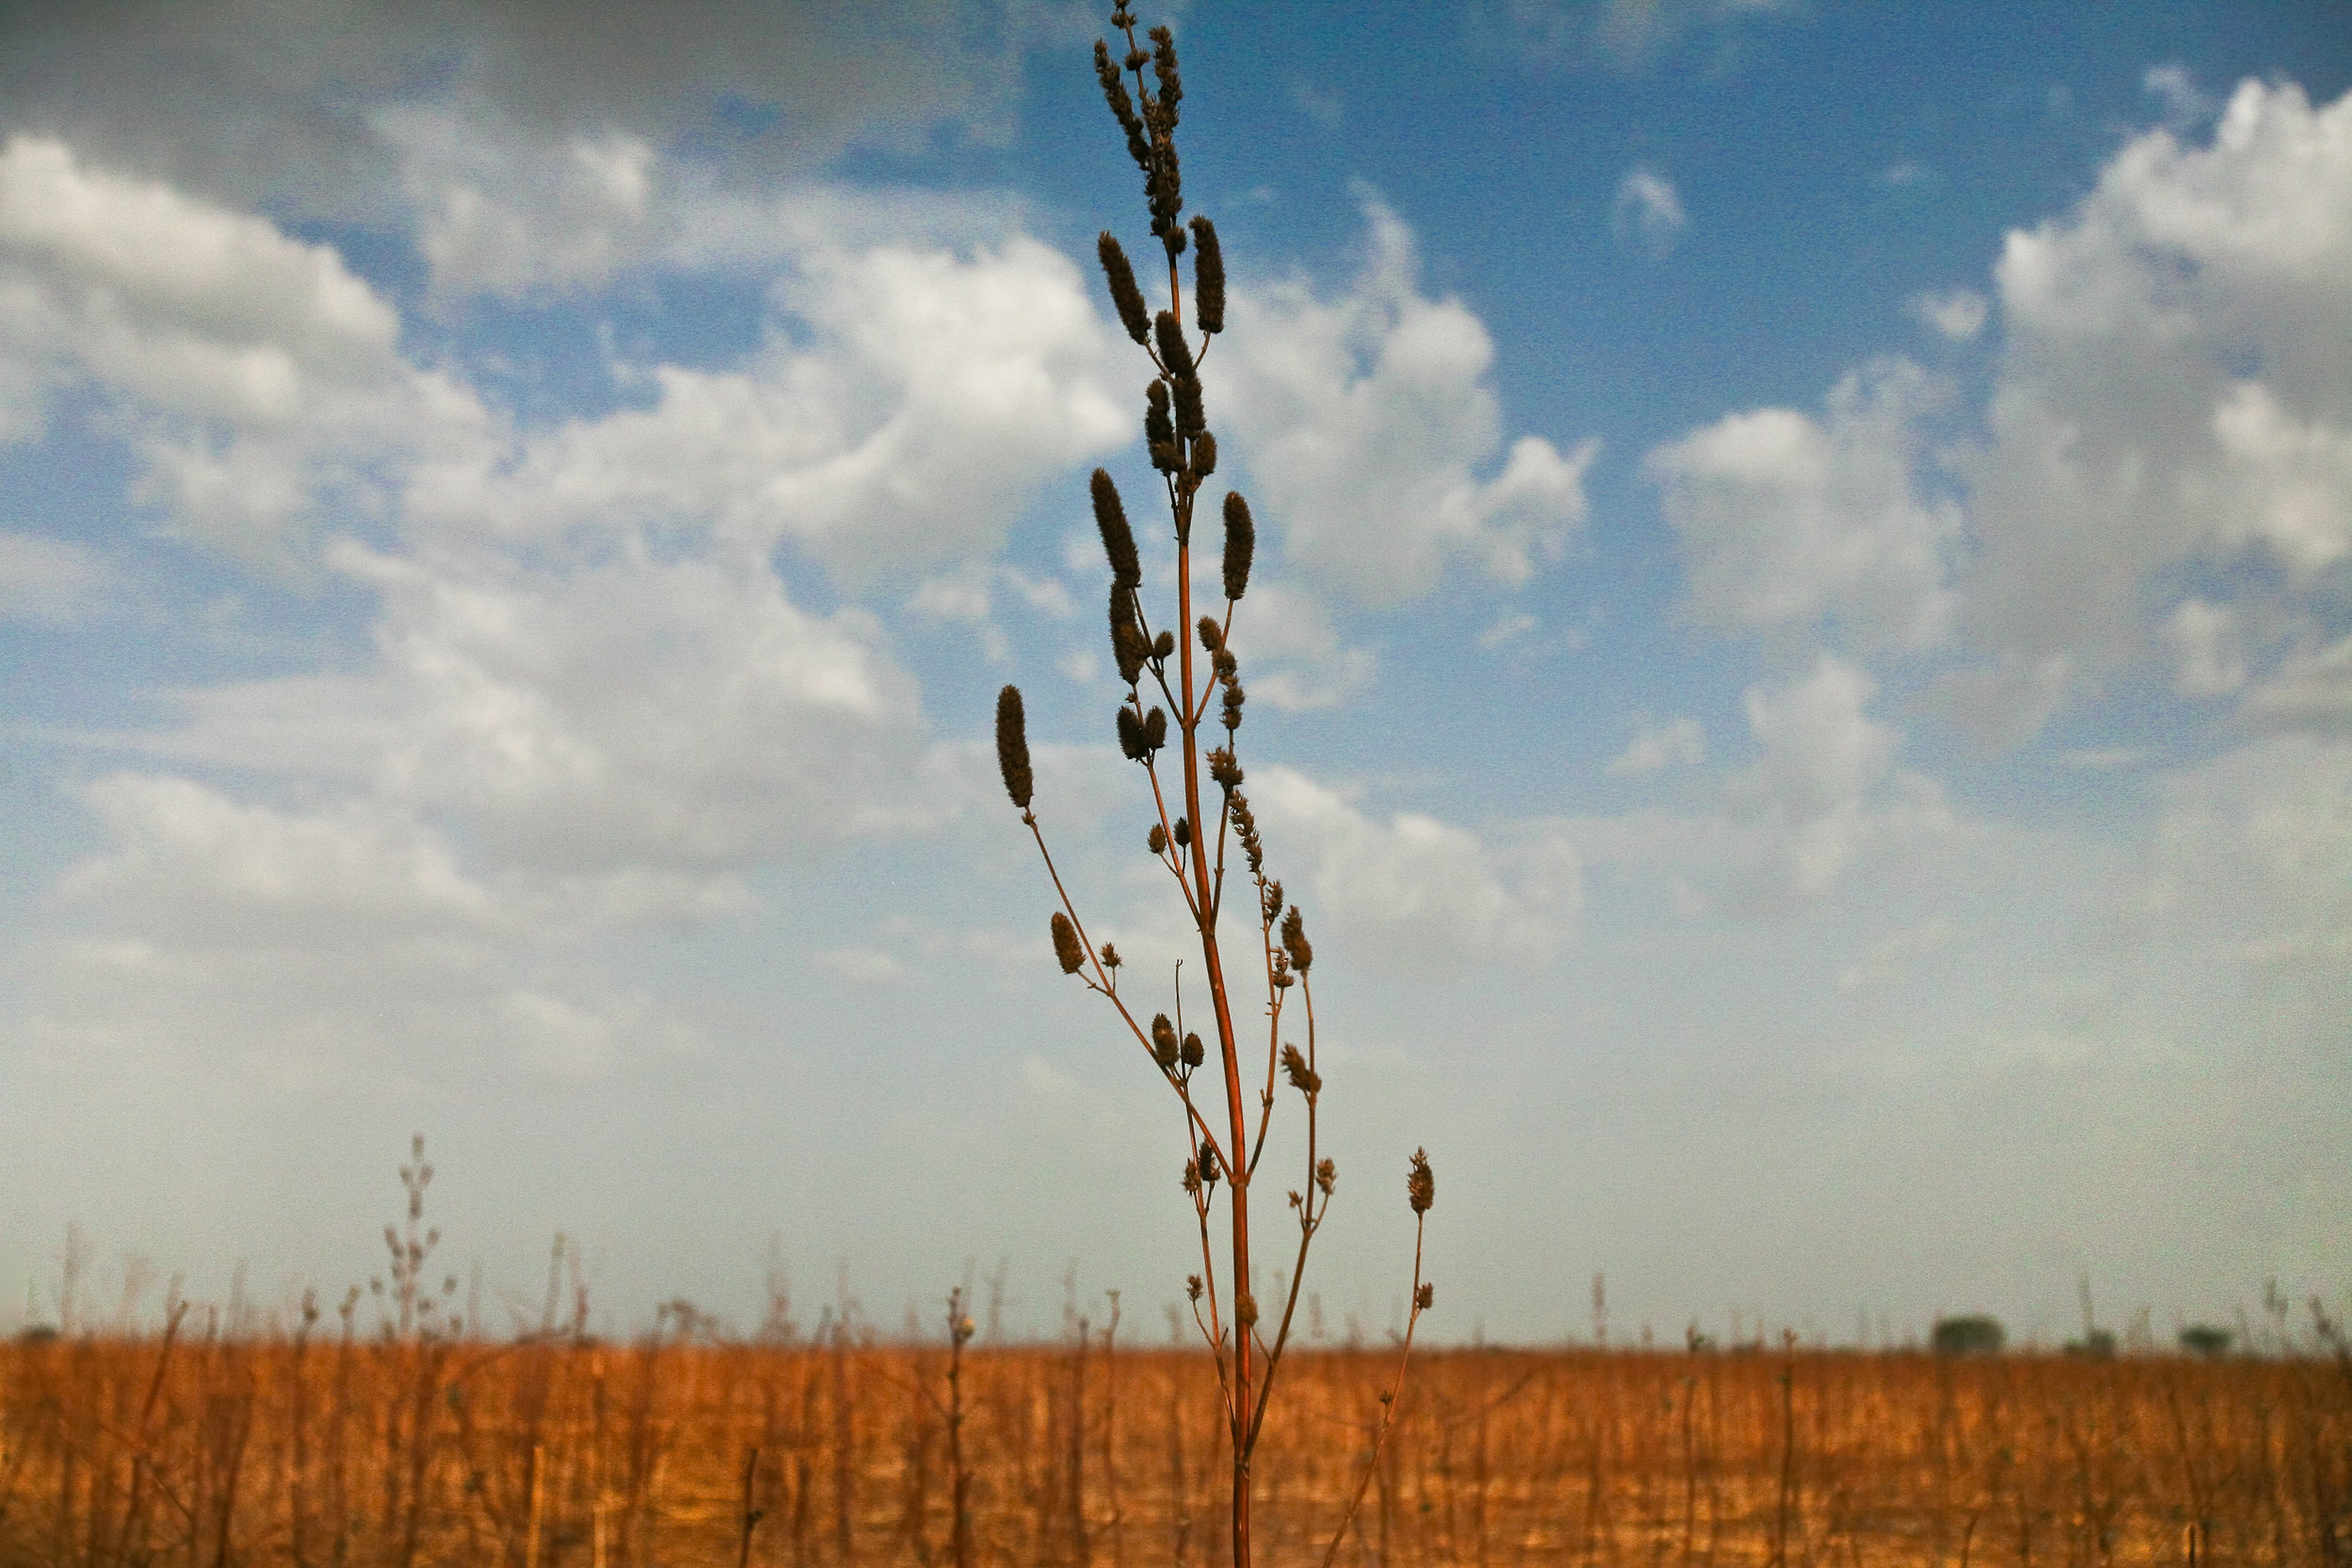 Weeds grow in the farmland outside of Tampion, Ghana, March 27, 2009. The north's long dry season keeps villagers from farming for much of the year, resulting in a shortage of employment and trade in the region.